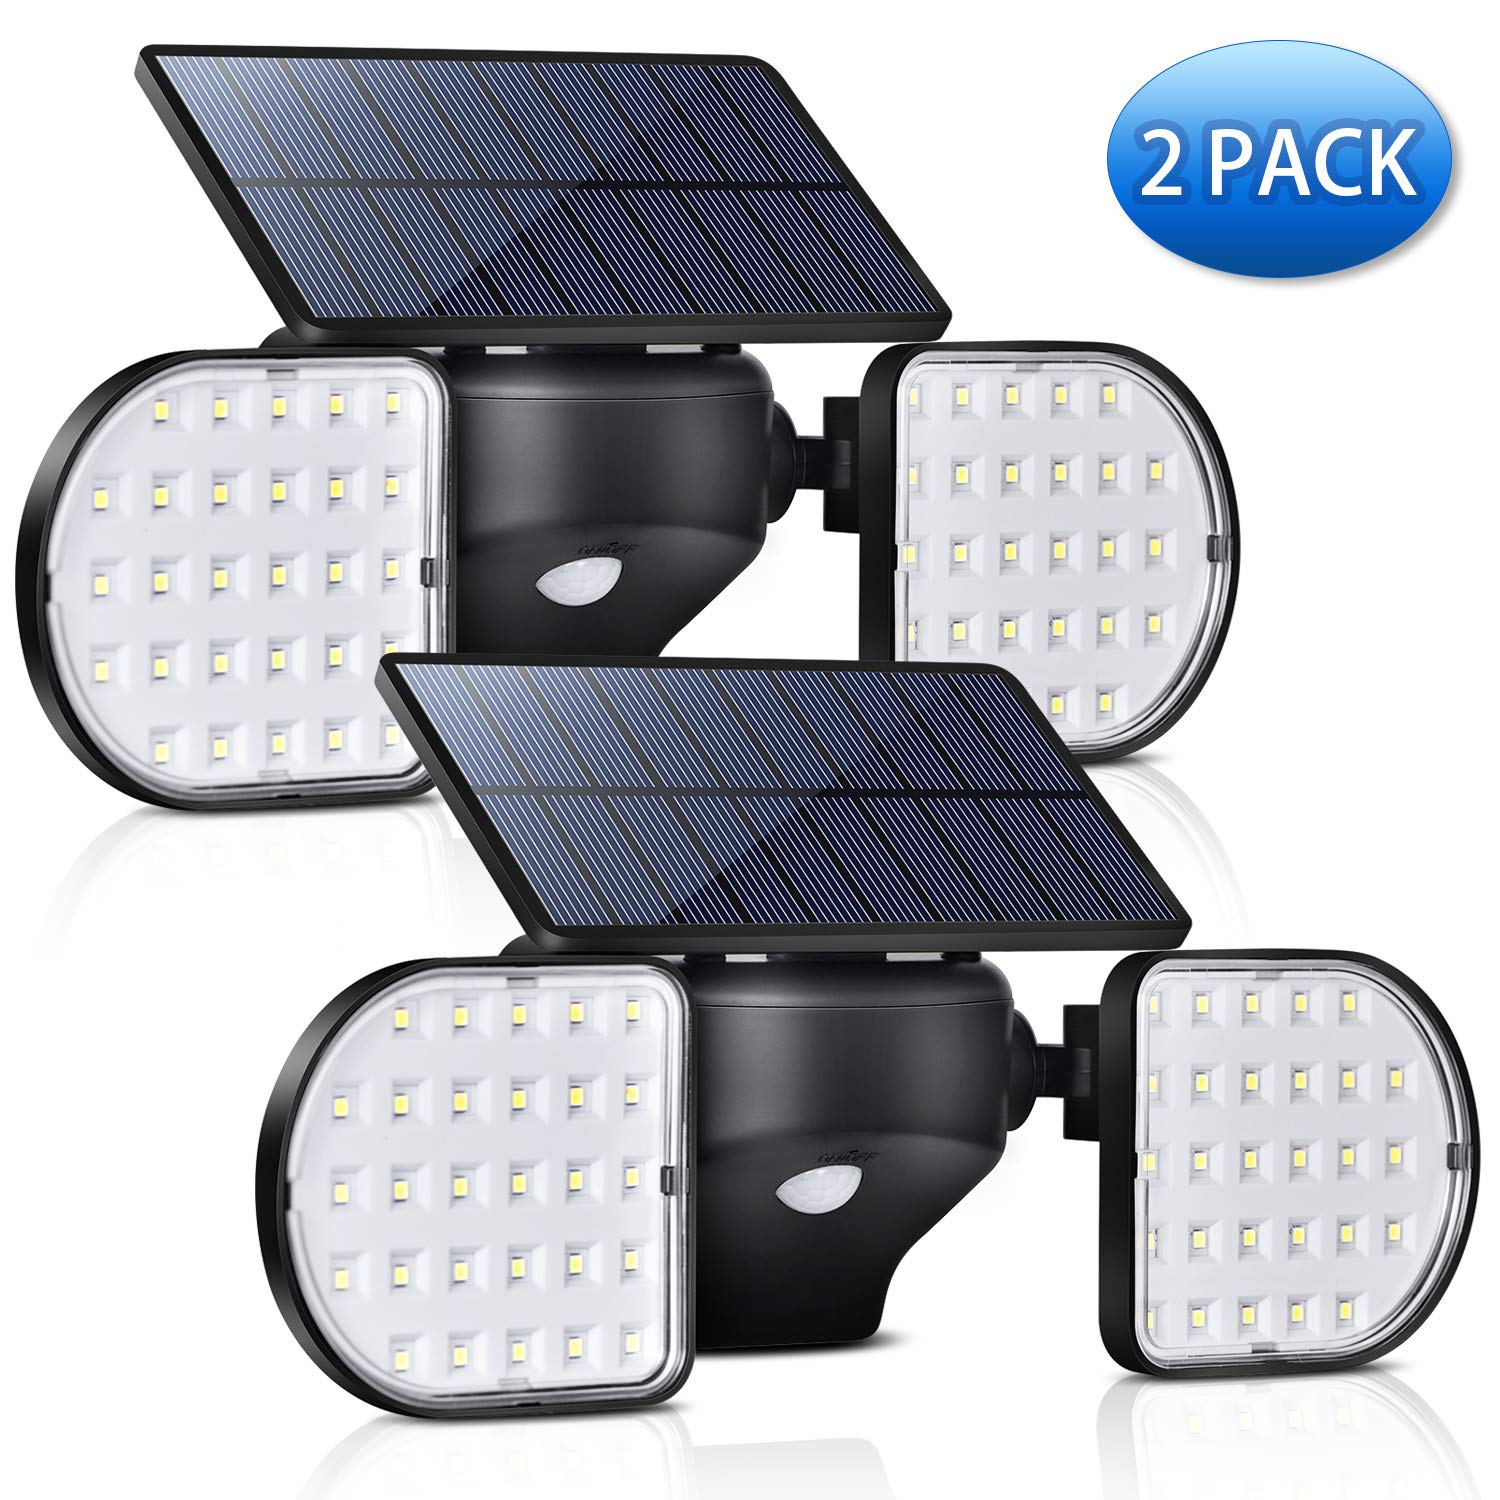 A-ZONE Outdoor Solar Motion Sensor Light, Solar Motion Sensor Security LED Wireless Flood Lights Outdoor with Dual Head Spotlights Rotatable Solar Security Lights for Yard Garden Garage Pack 2